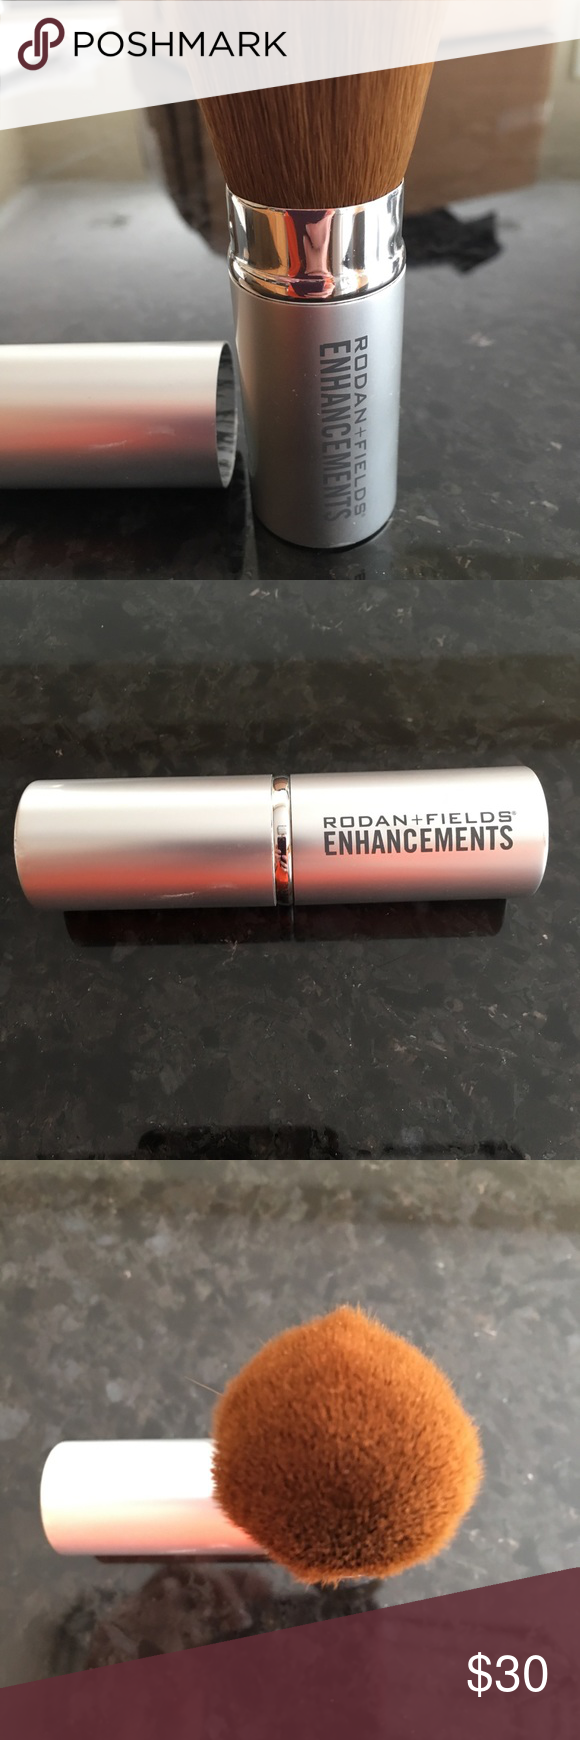 New Rodan and Fields makeup brush and sample Rodan and